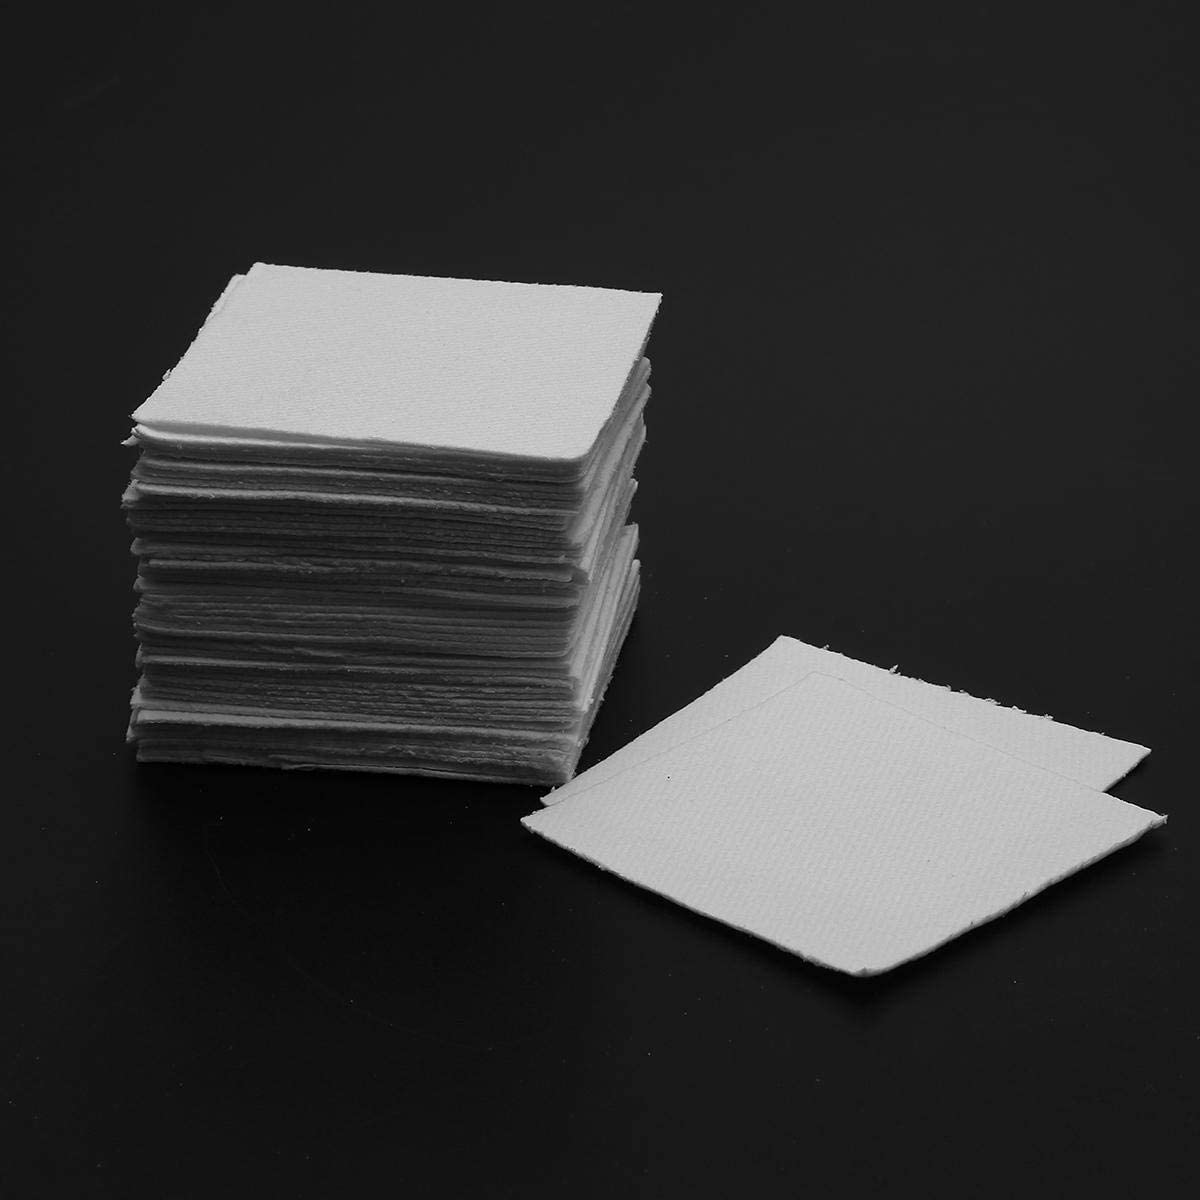 OKIl 50Pcs 8x8cm Bullseye Hot Pot Thinfire Kiln Paper for DIY Glass Fusing